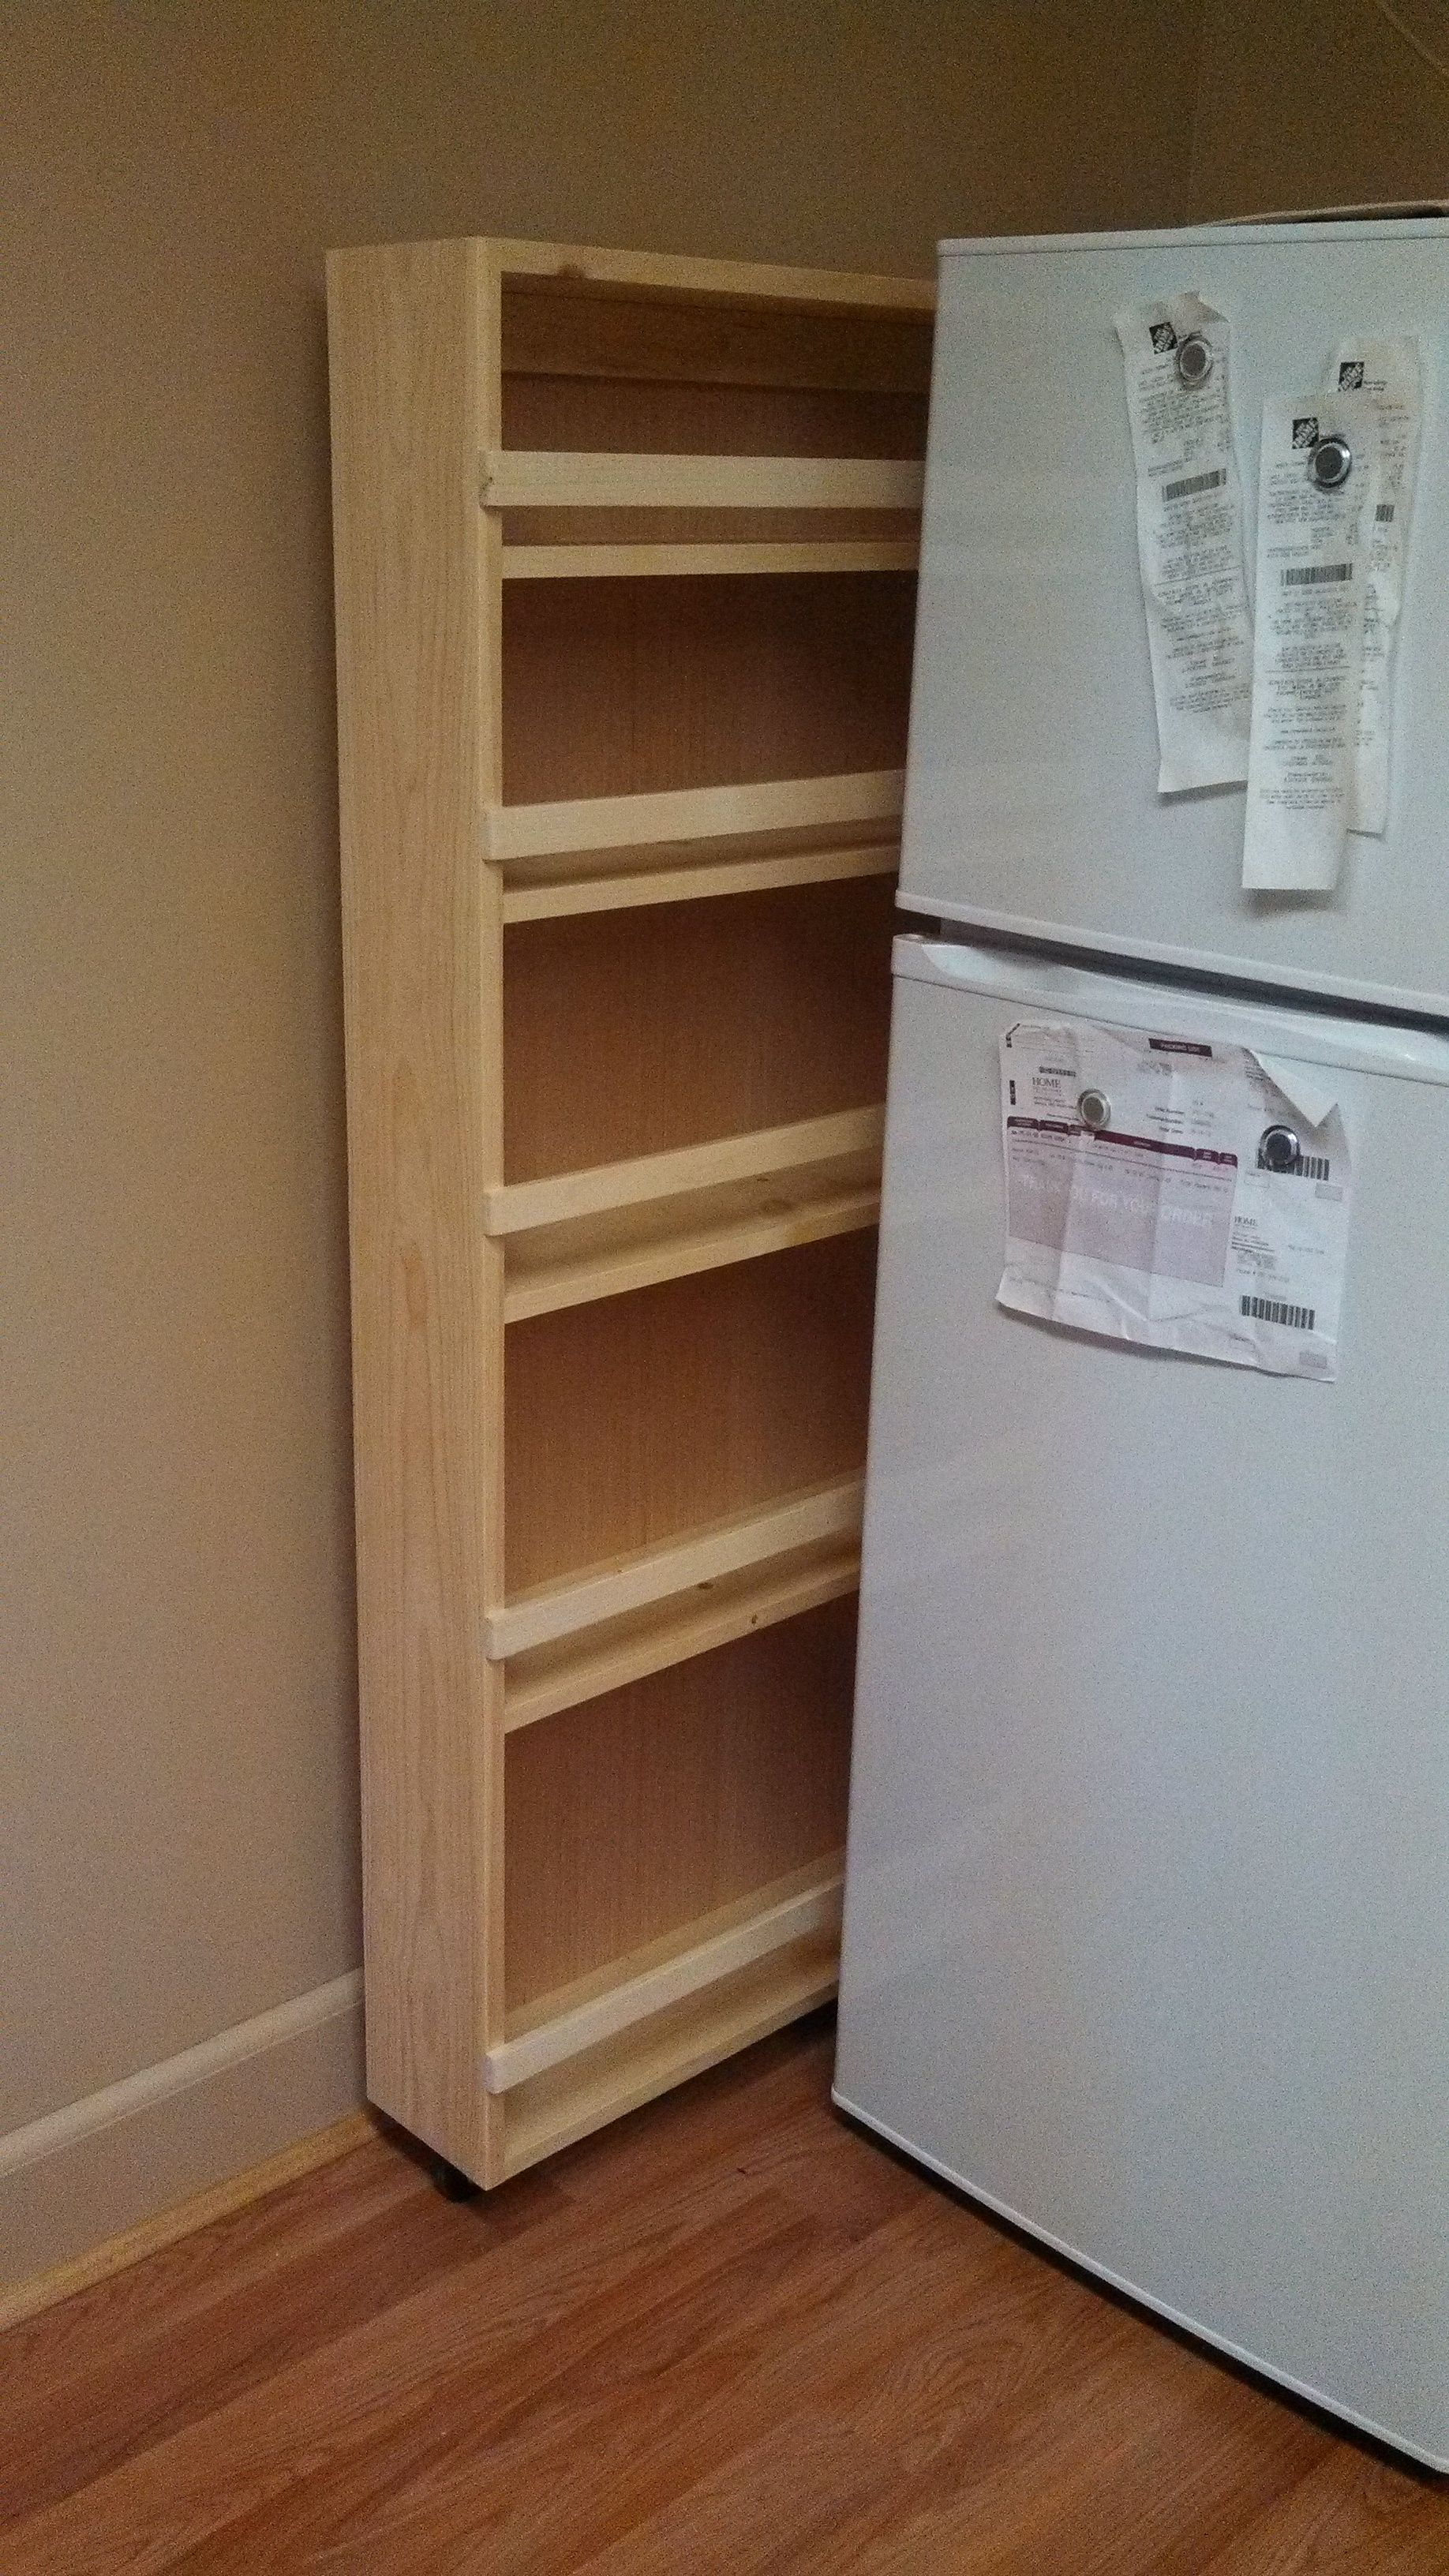 Rolling Food Pantry For My Super Tiny Apartment First